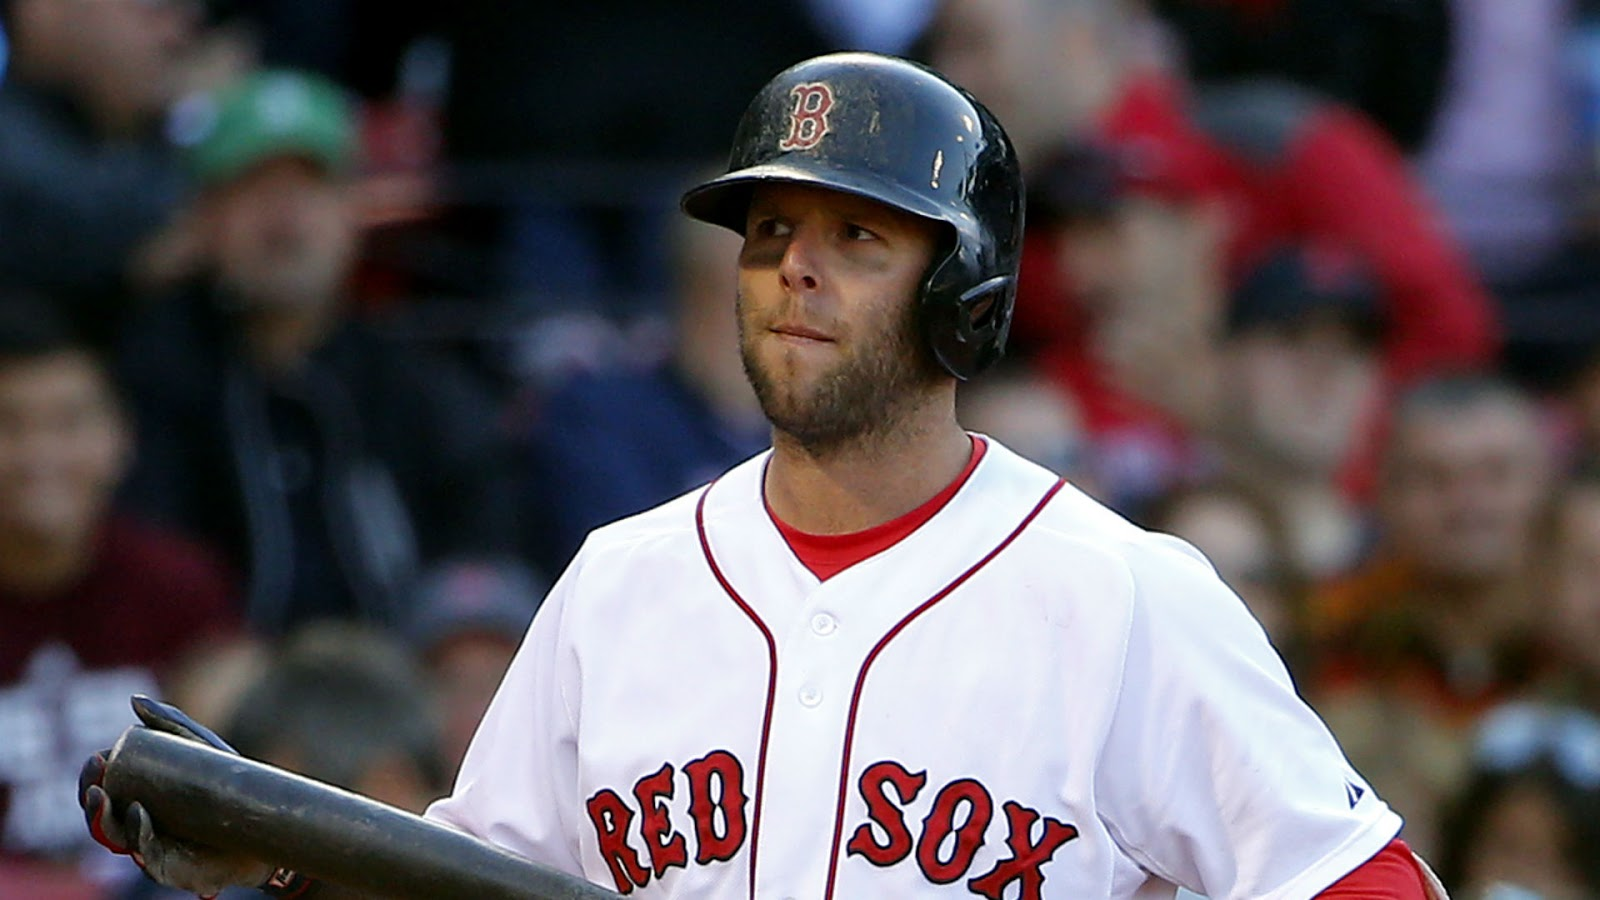 CarterHud: MLB News: Red Sox Place Pedroia On DL, Activate